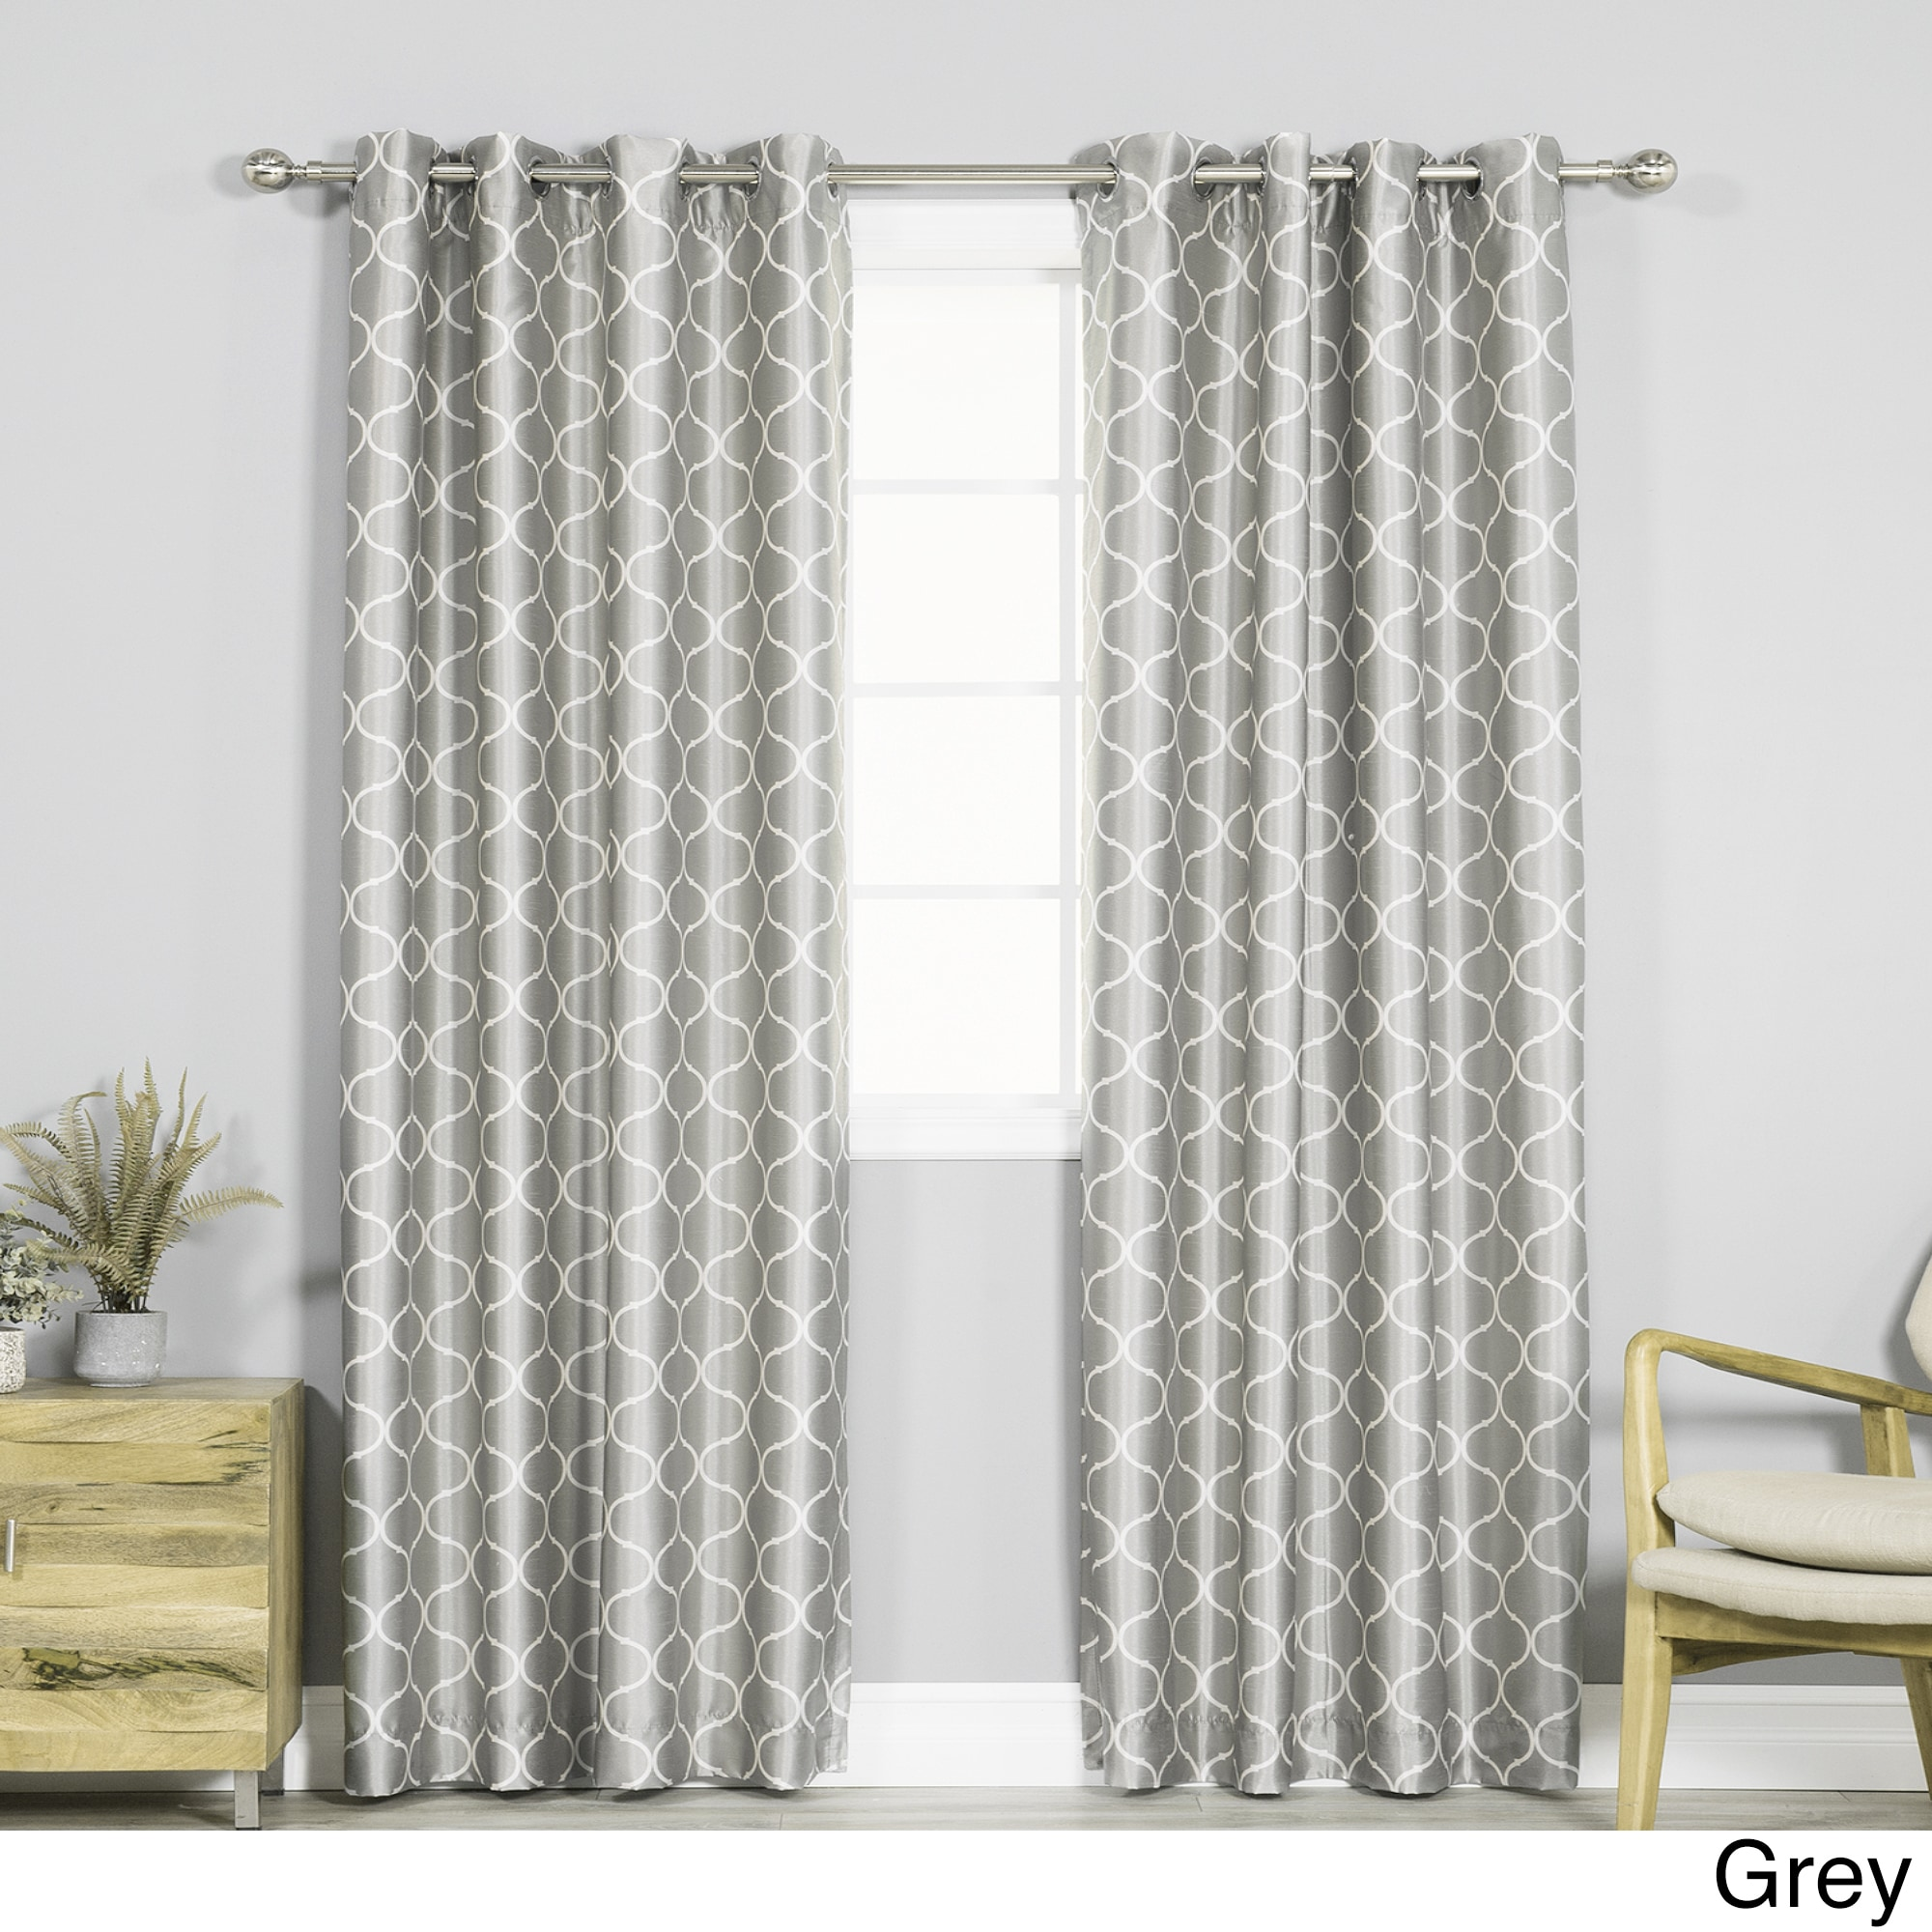 panels inch for curtain drapes ideas window long inches interesting using curtains decorating